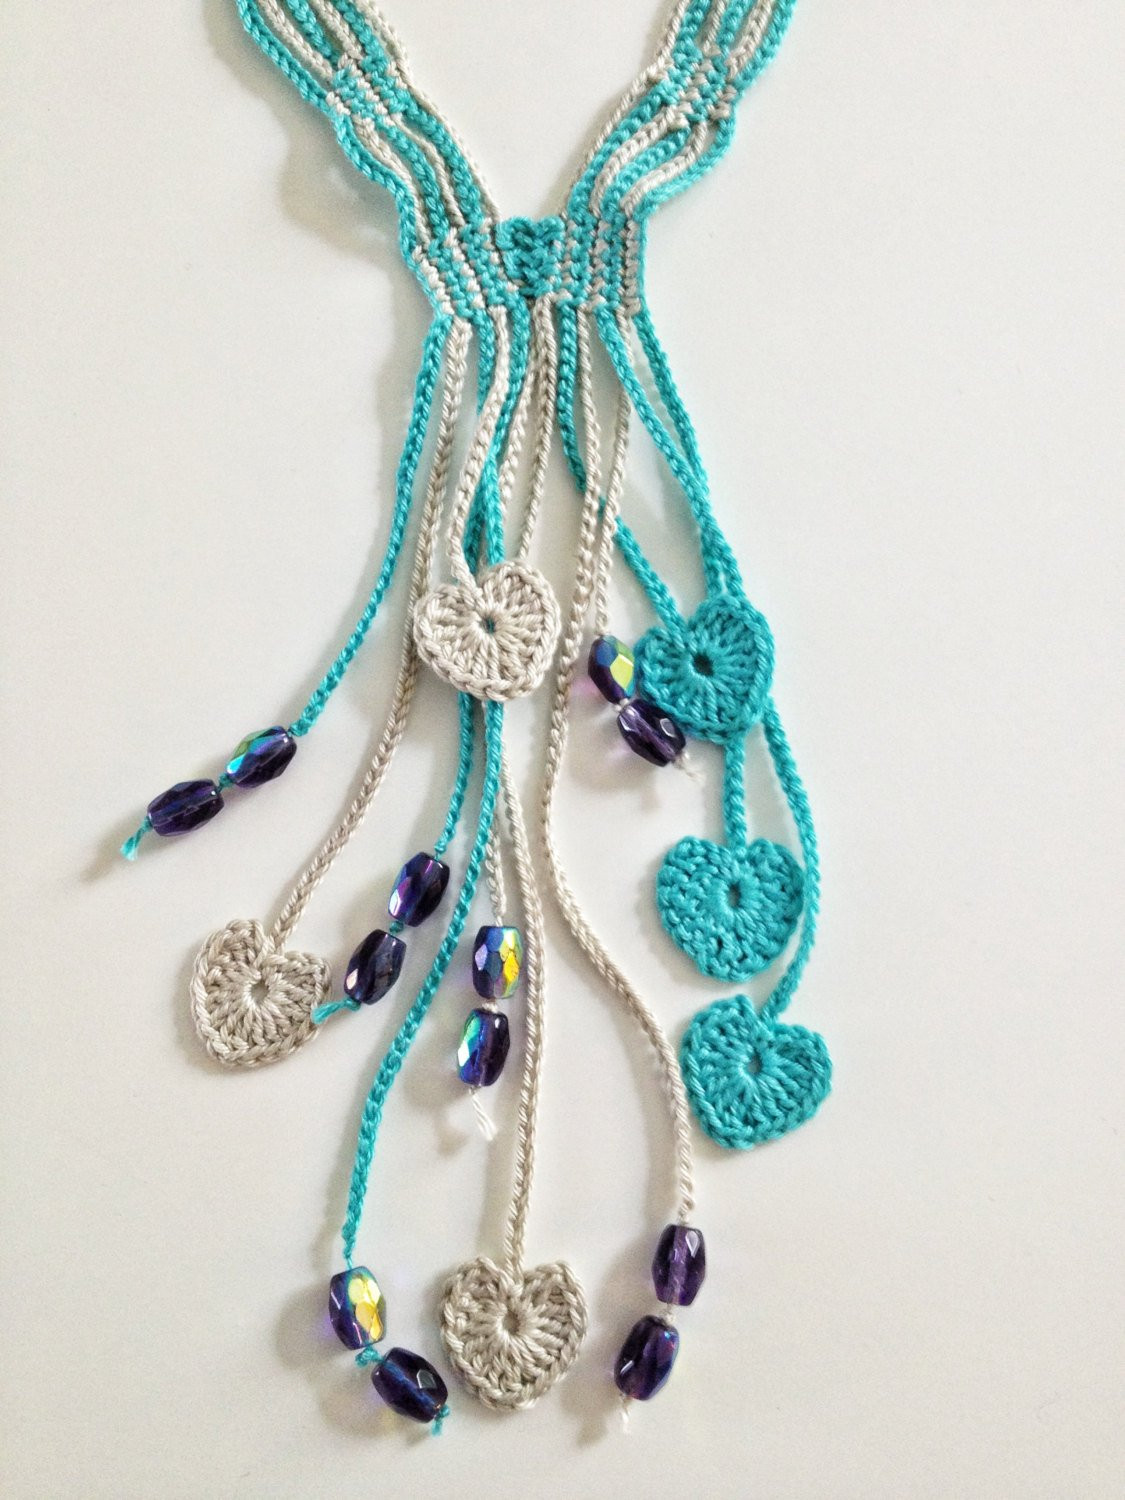 Blue hearts beaded crochet necklace